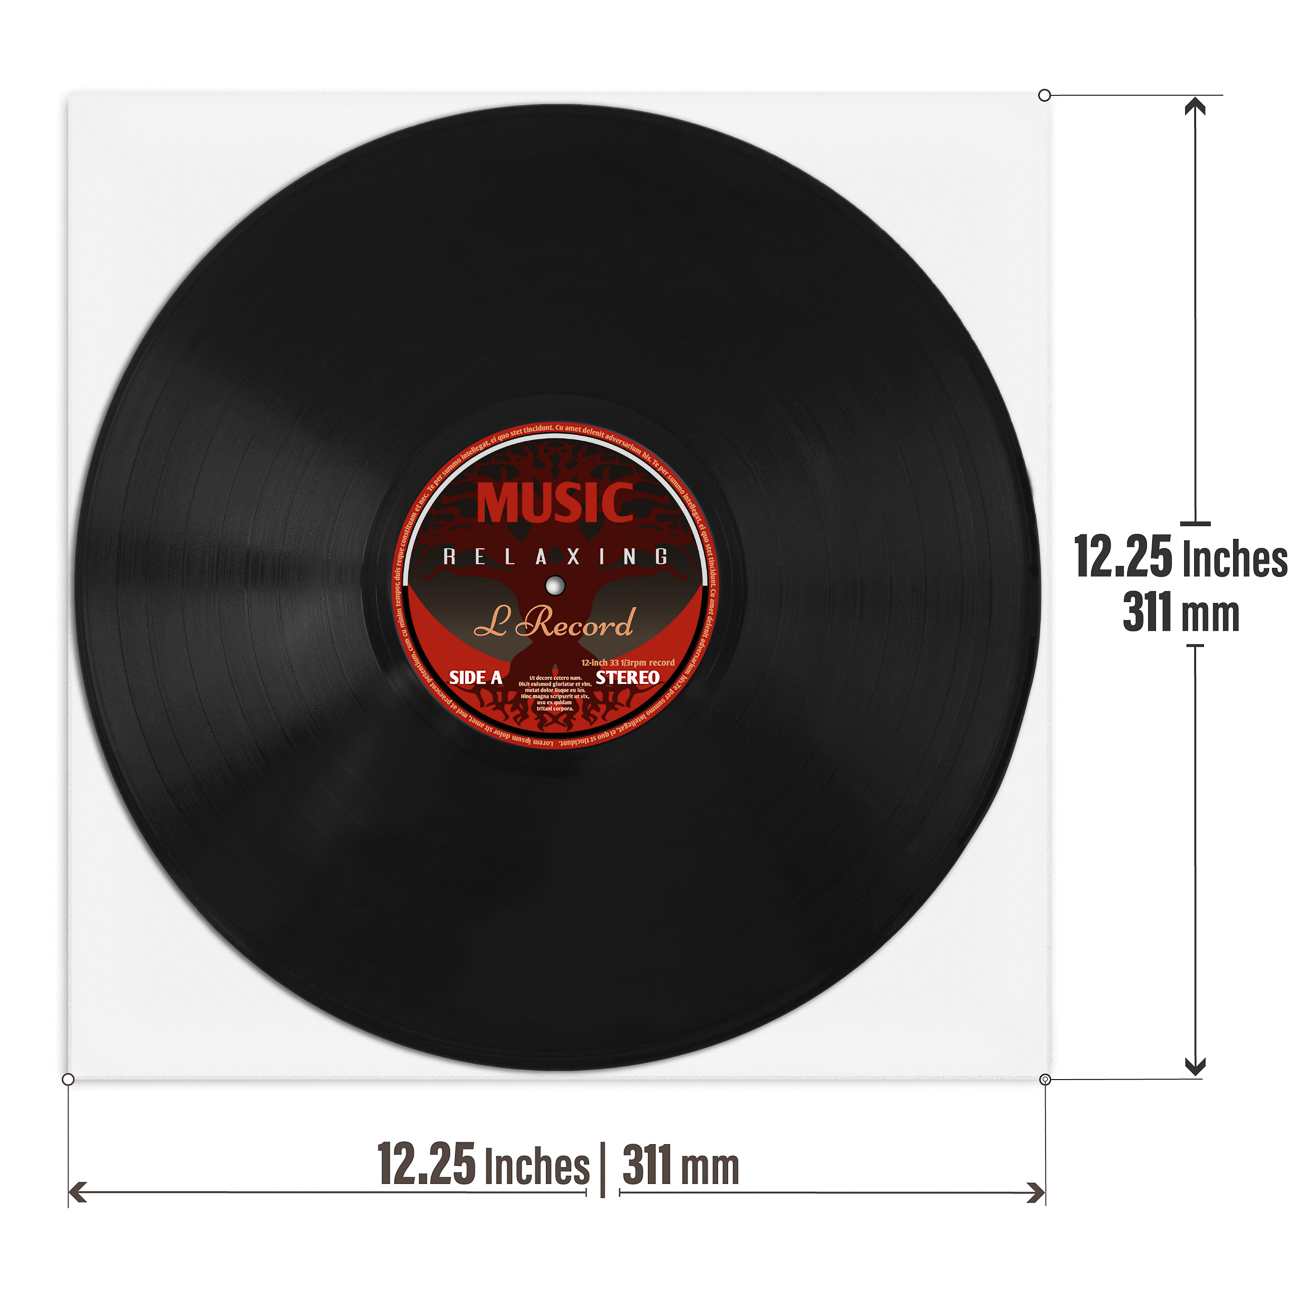 Printable Vinyl Record Jackets Uncoated White Prosumer S